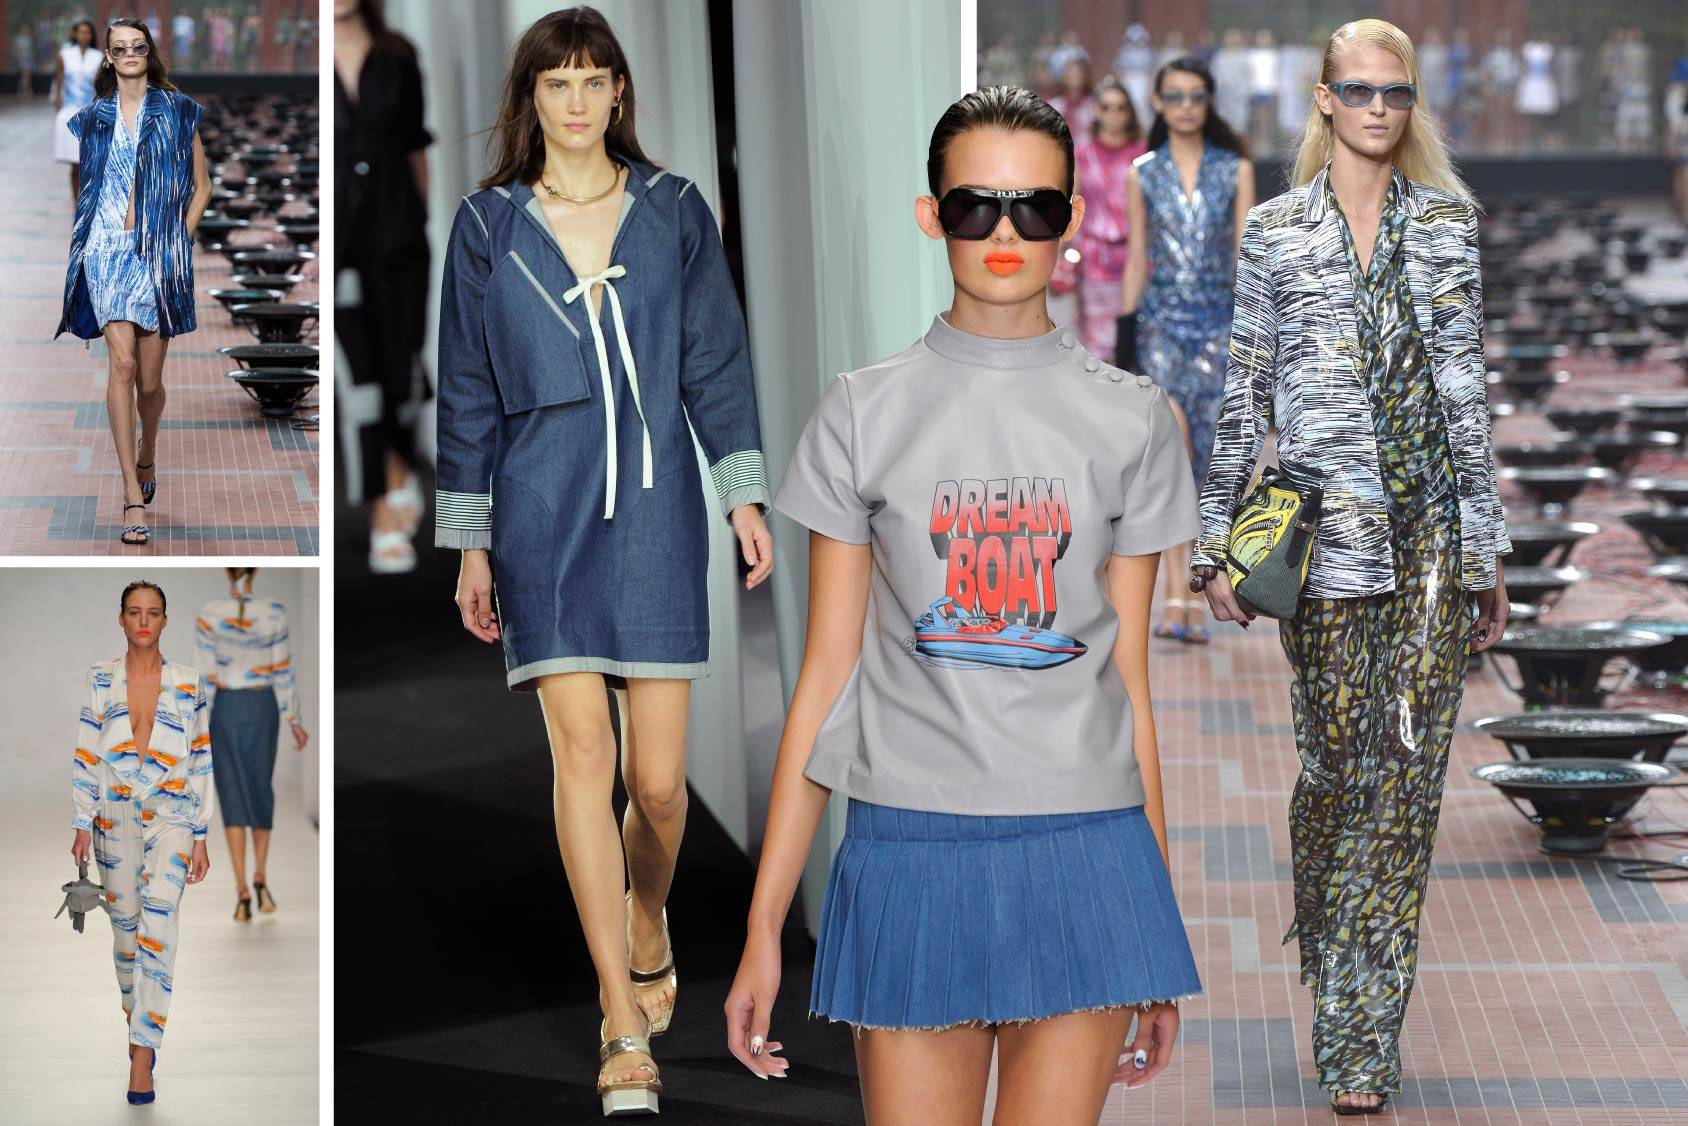 Kenzo, Ashley Williams, Acne, Ashley Williams and Kenzo, Spring/Summer 2014, All Over Press.